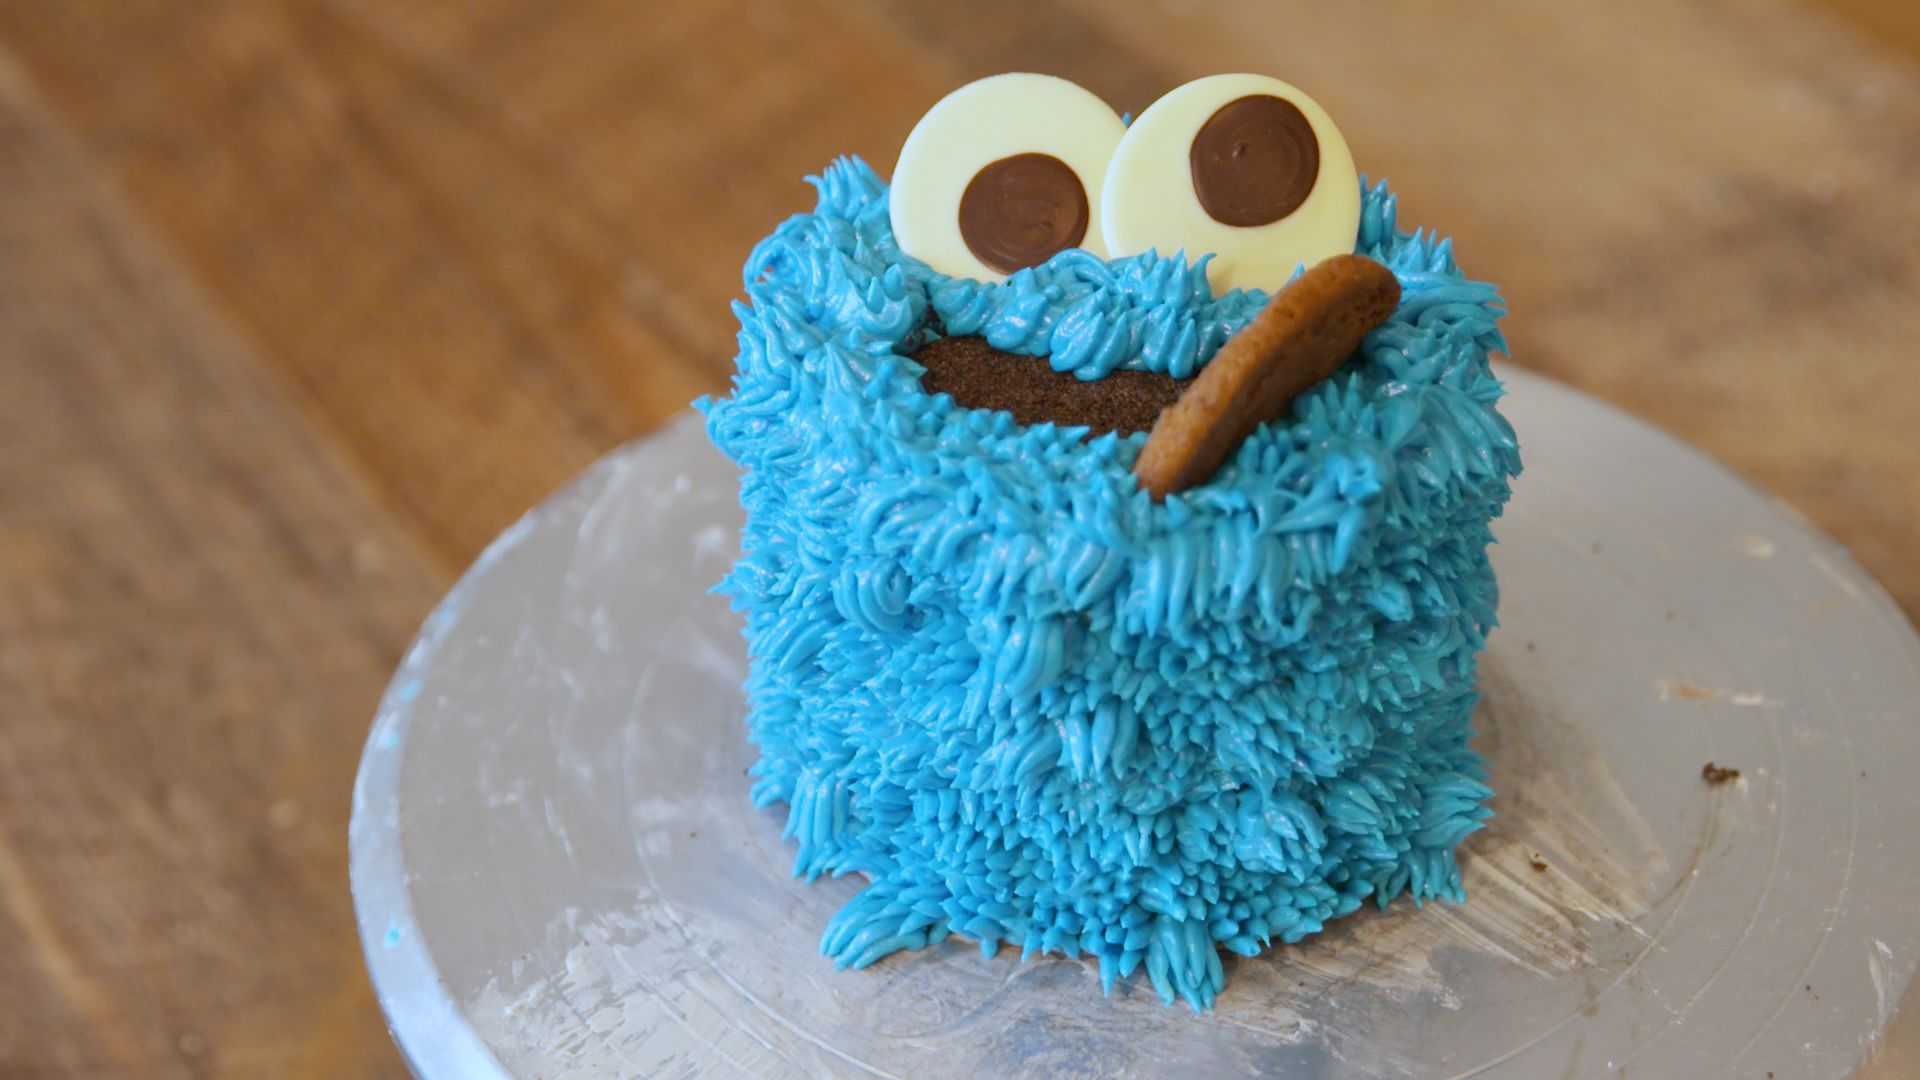 This Perfect Little Cookie Monster Cake Is Not What It Seems